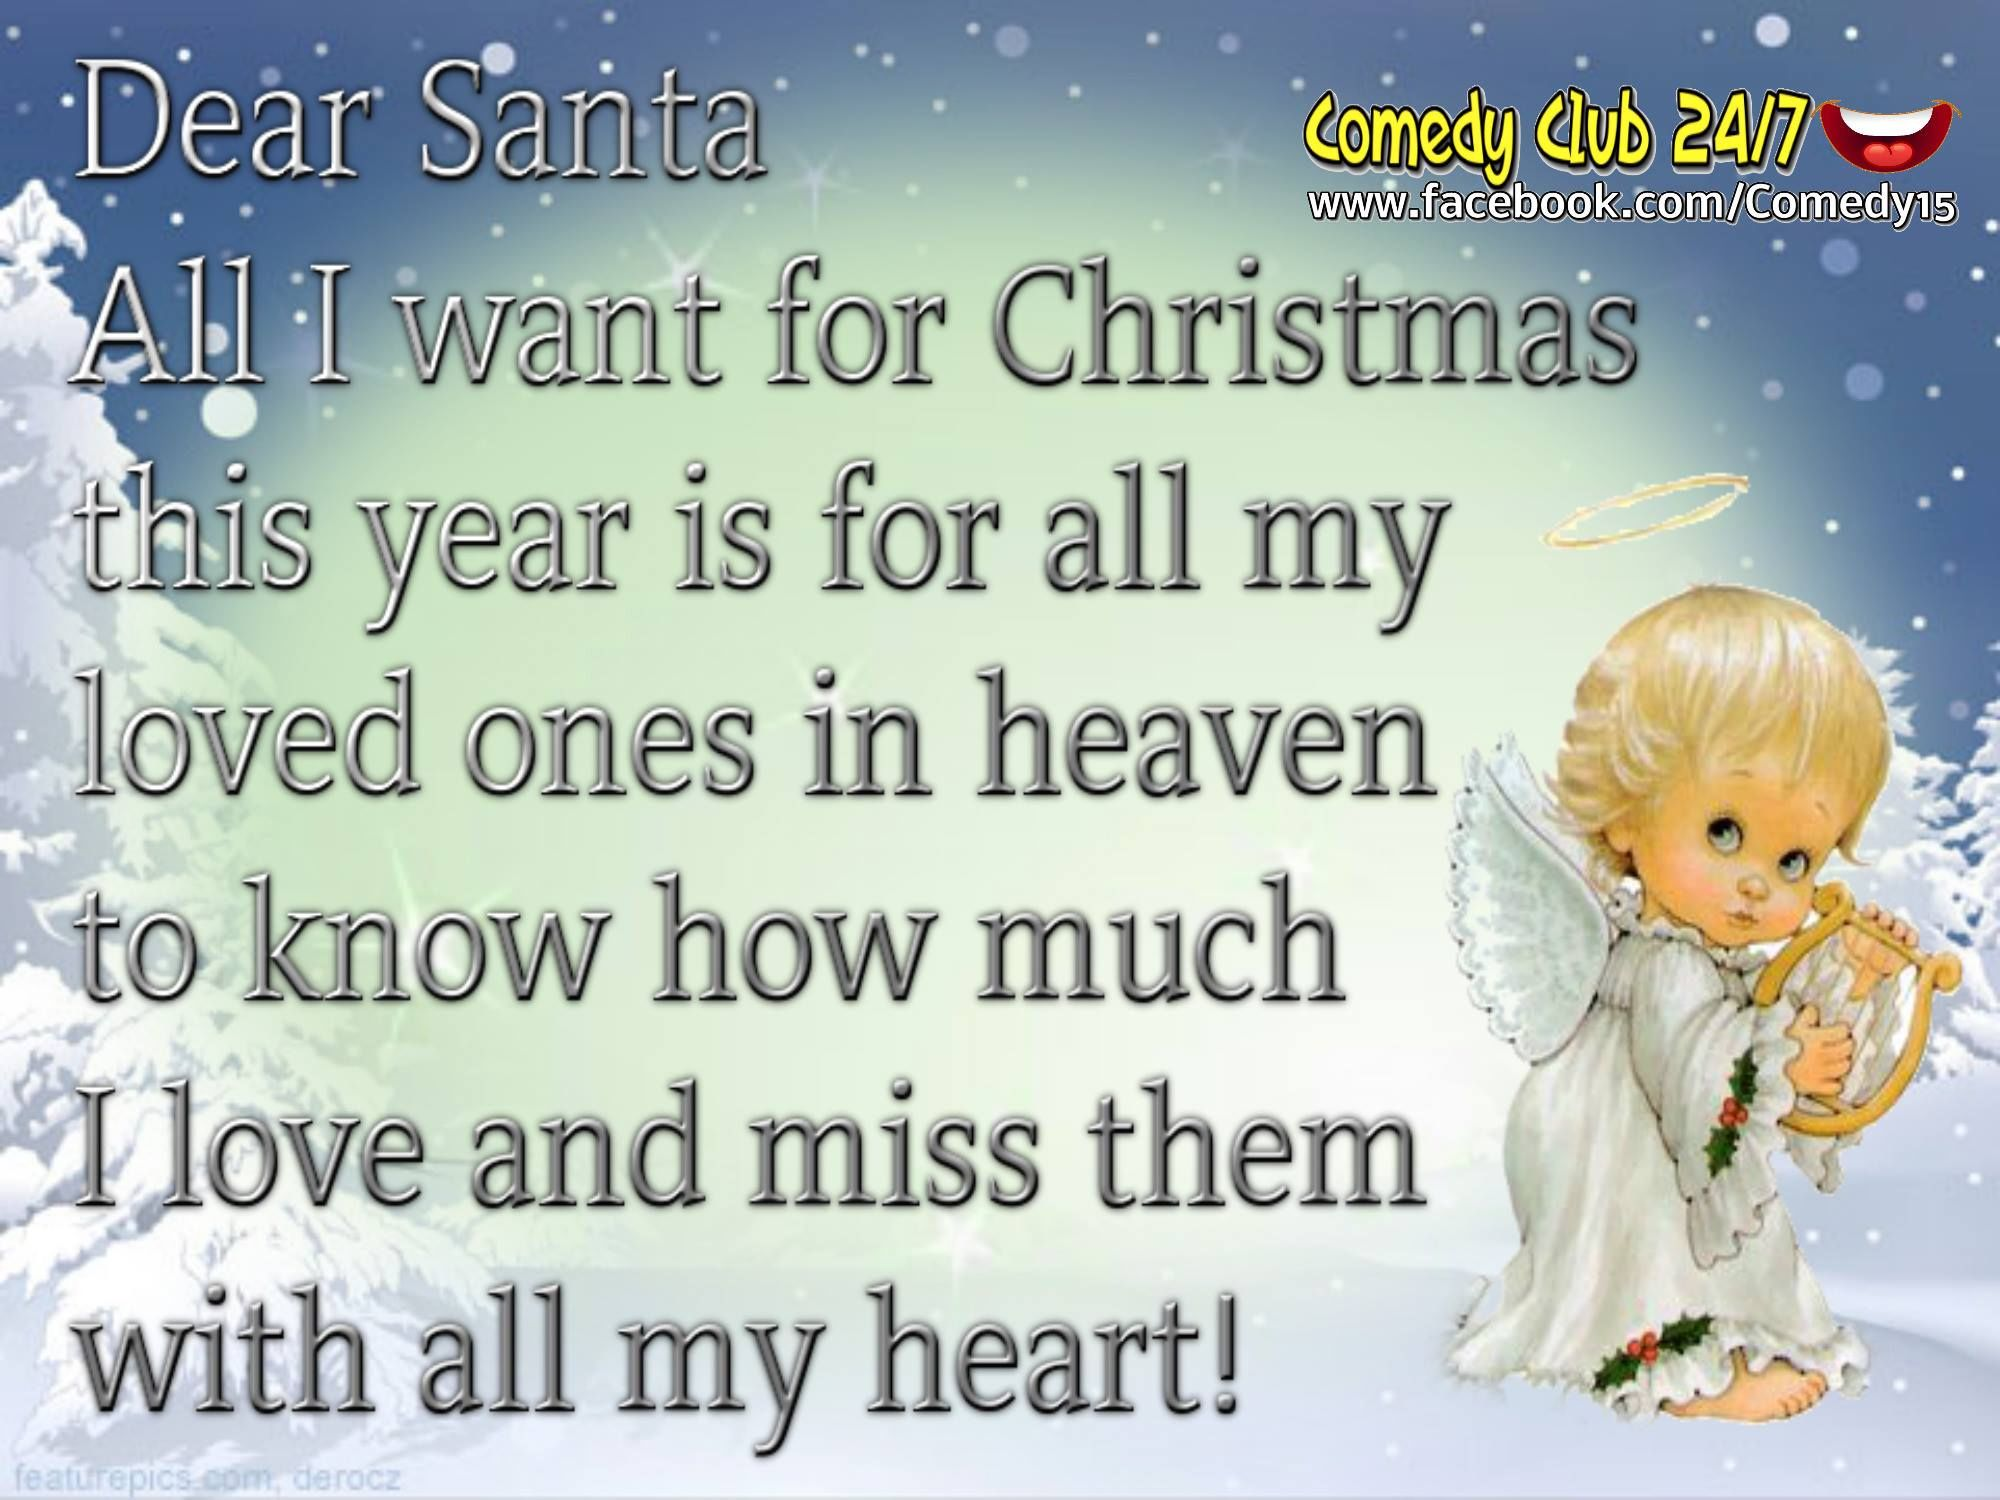 Quotes About Lost Loved Ones In Heaven Amazing Dear Santa I Want All My Loved Ones In Heaven To Know I Love Them